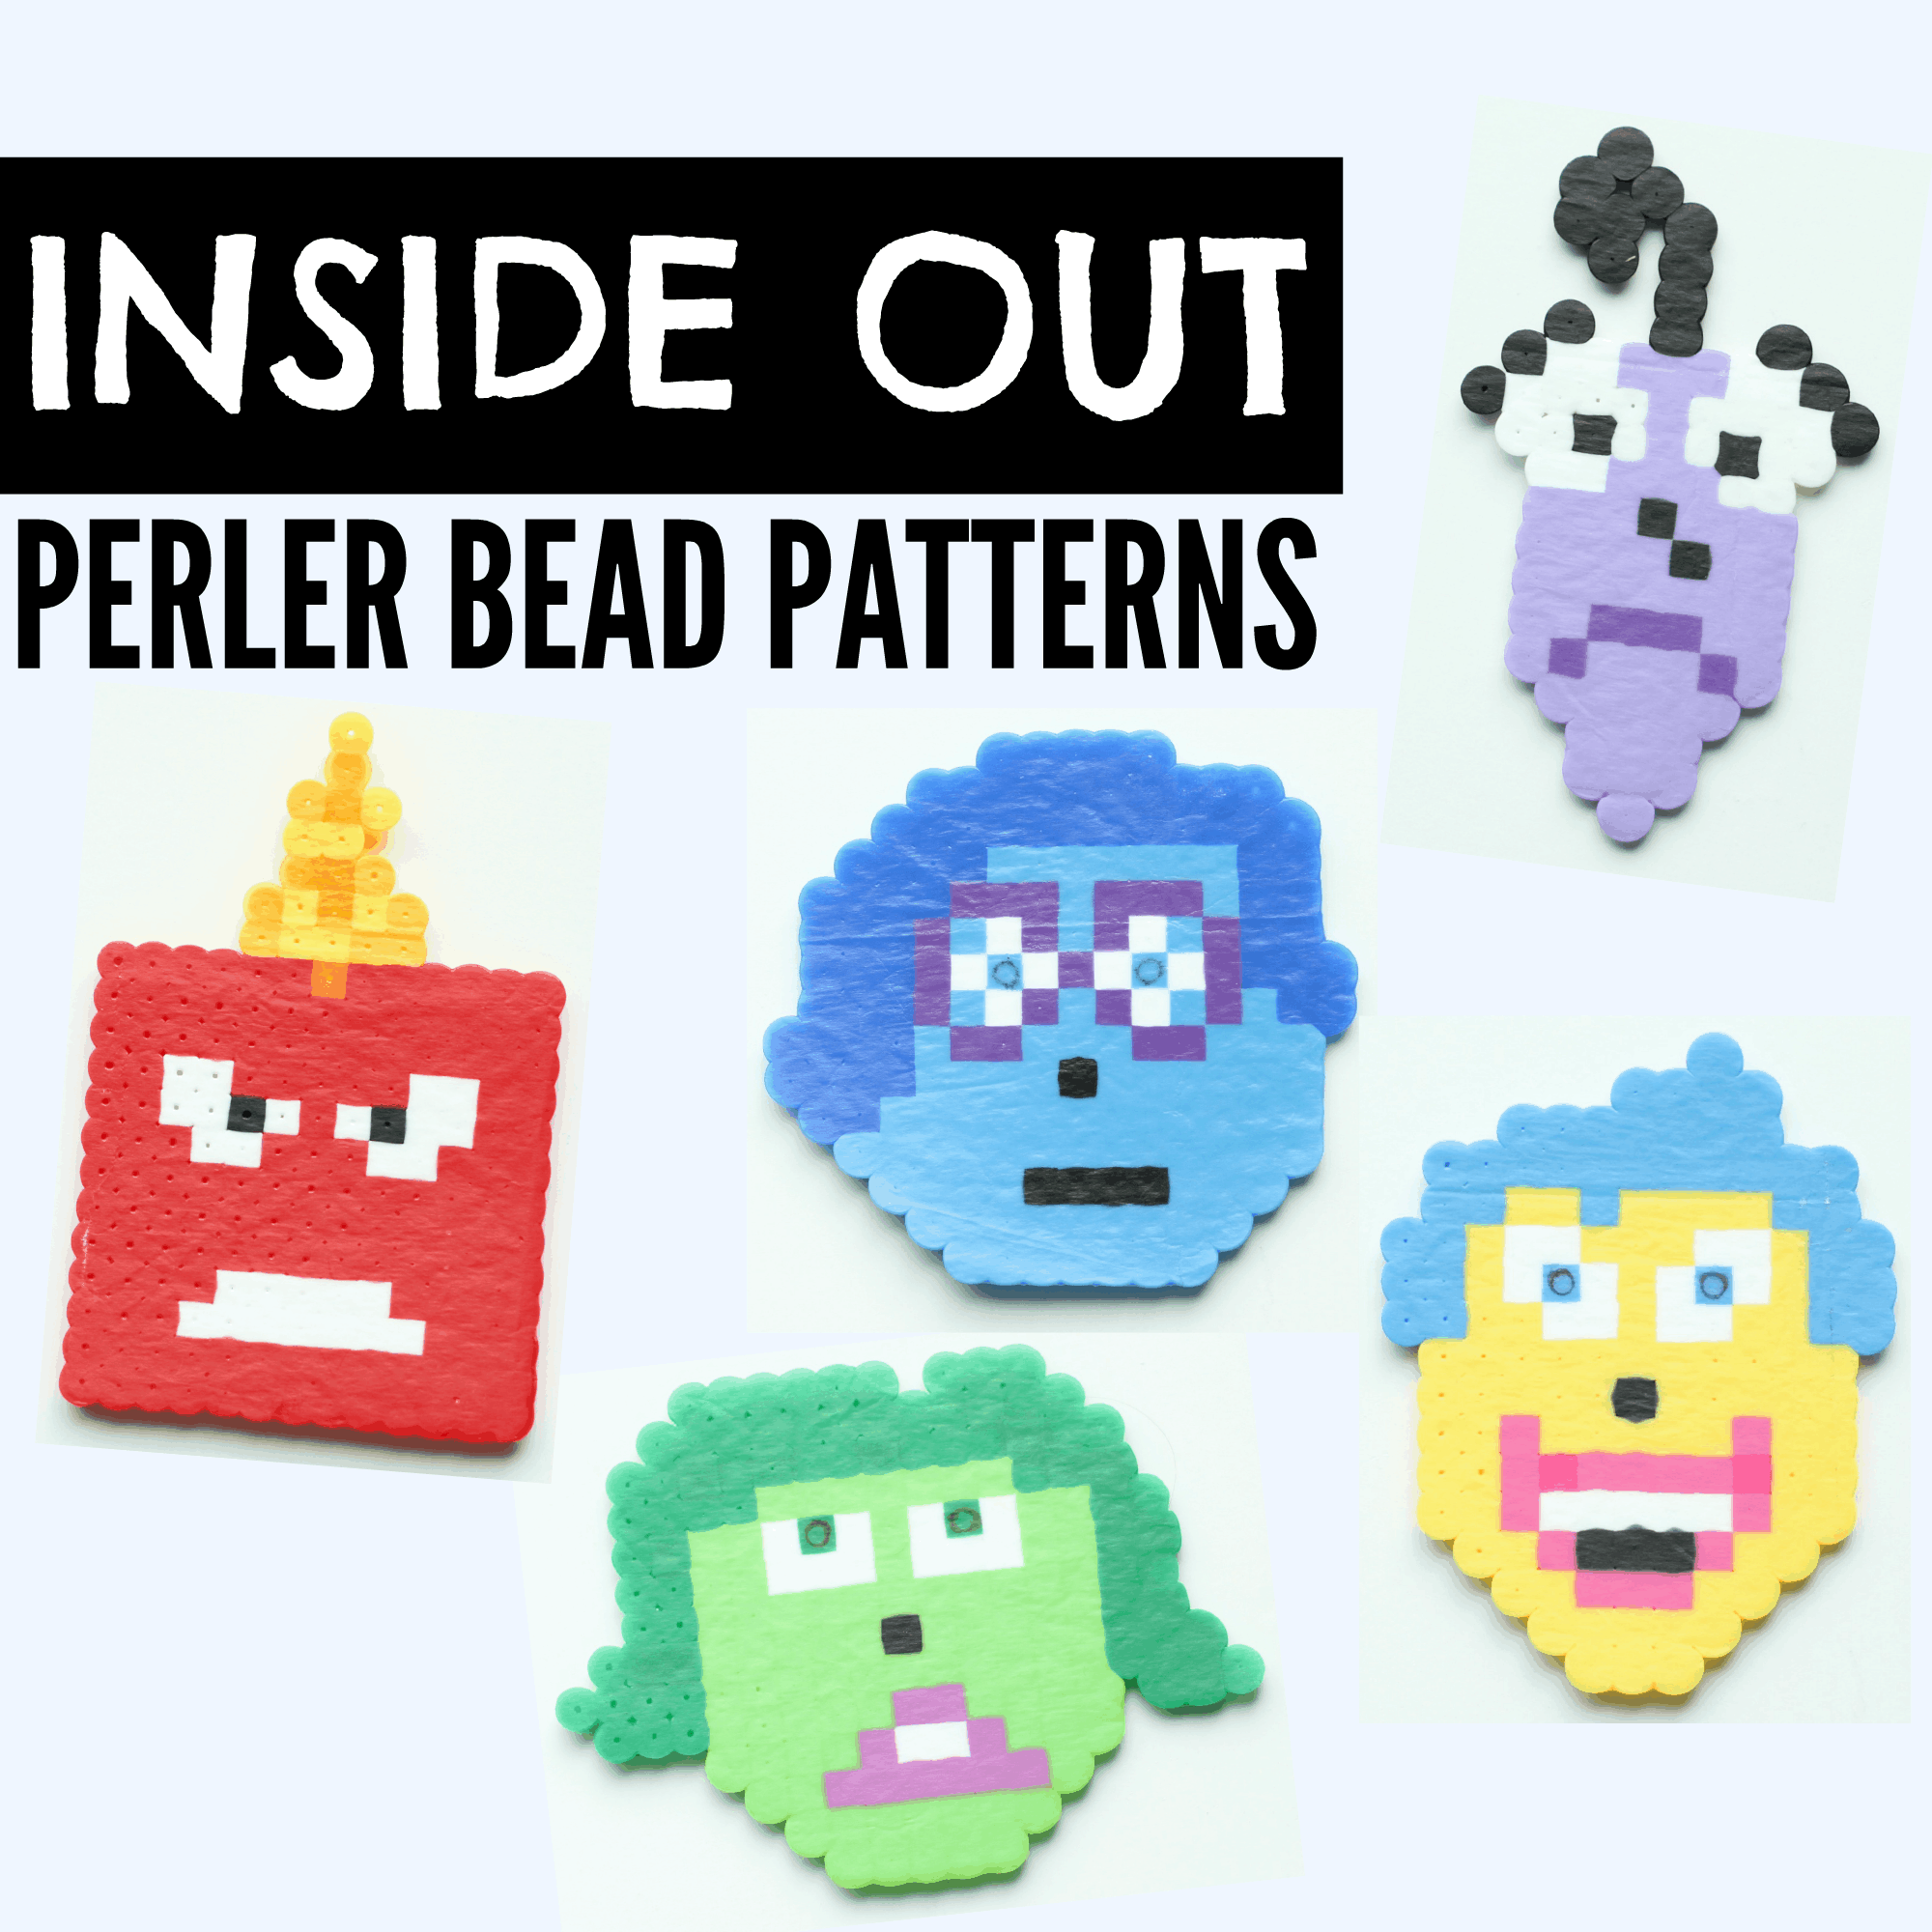 Christmas Hama Bead Designs.Perler Bead Ideas With Printable Perler Bead Patterns